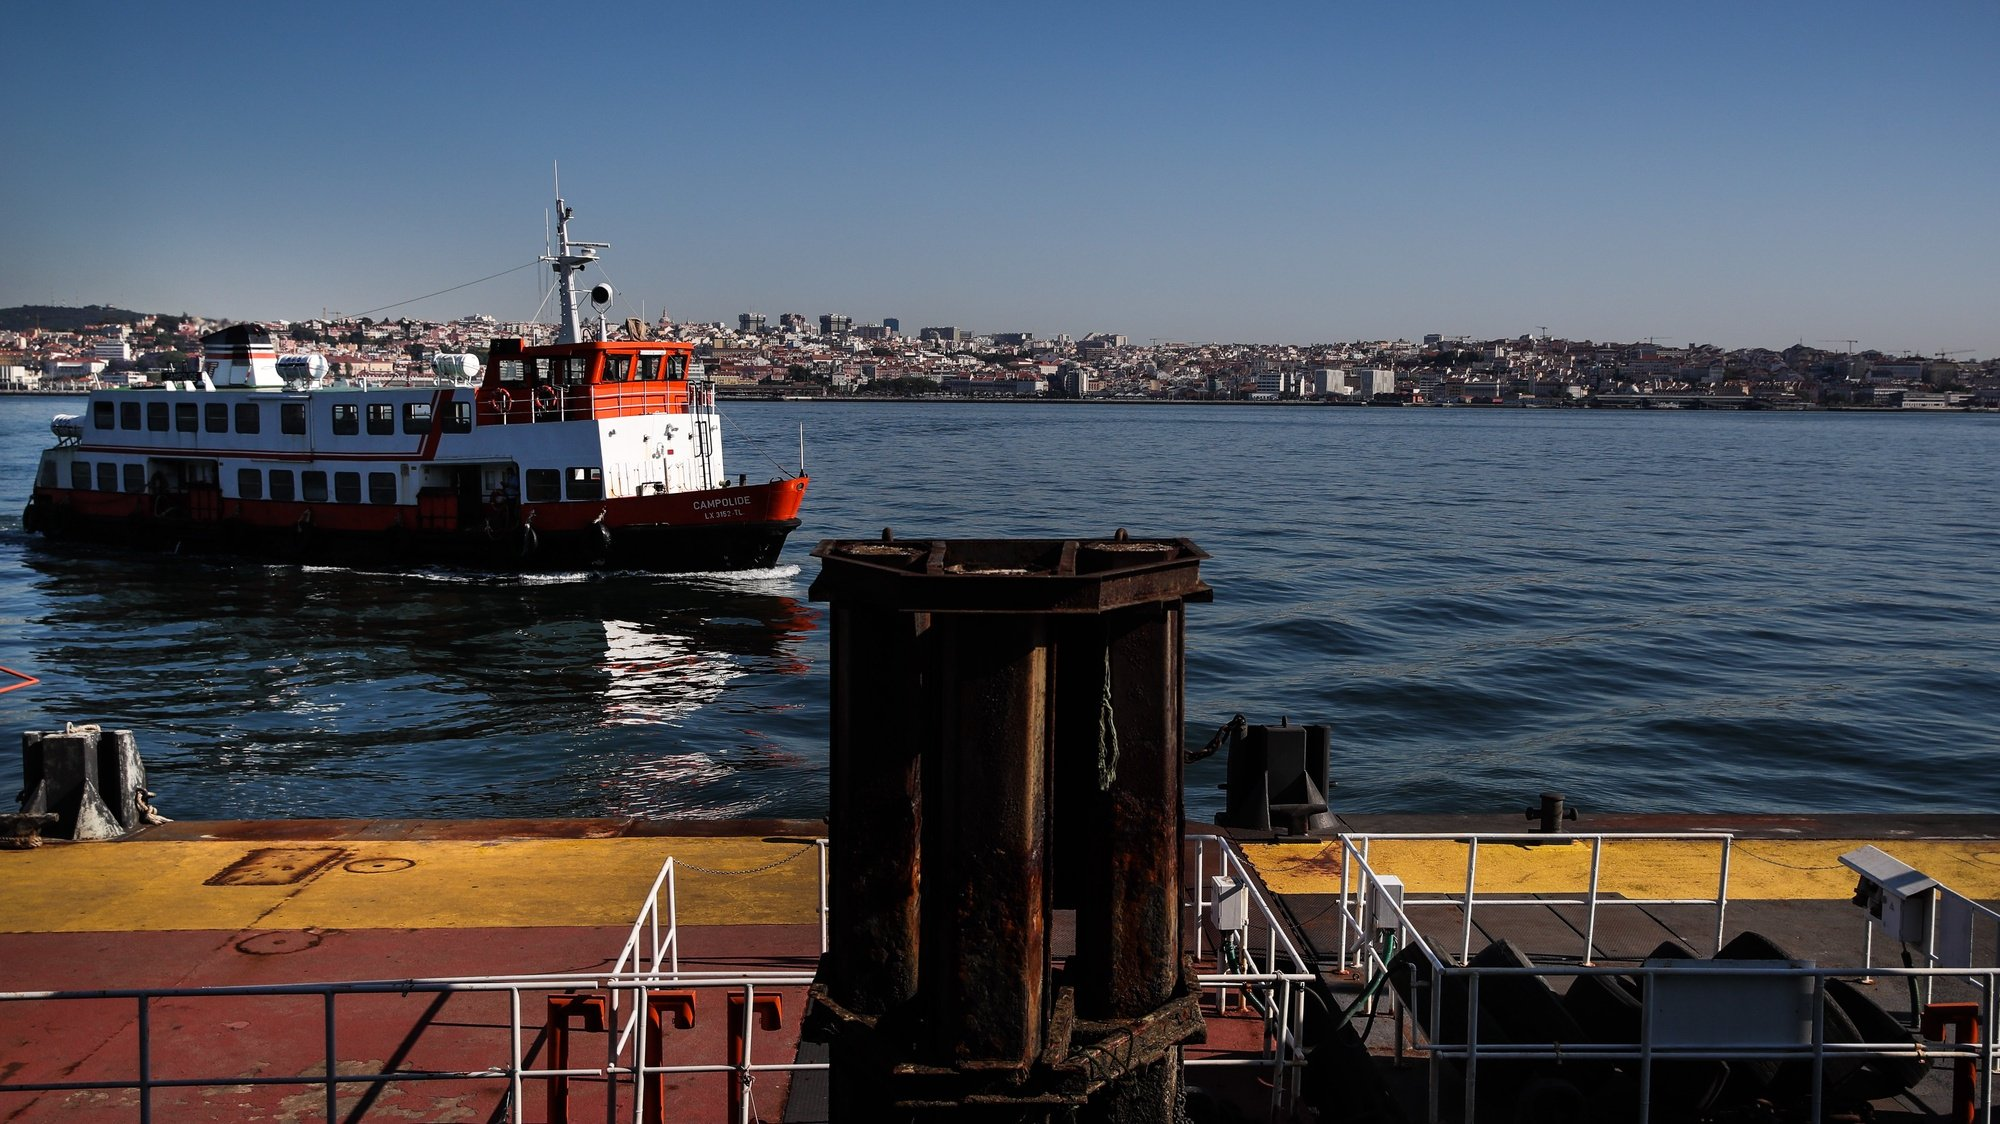 A ferryboat 'cacilheiro' crosses the Tejo River towards Cacilhas, Almada, Portugal, 20 May 2020. Public transportation has been strengthened with the entry of the second phase of deconfinement due to the covid-19 pandemic, despite this, careers are still short, which contrasts with the large use of river transport by Transtejo/Soflusa. MARIO CRUZ/LUSA